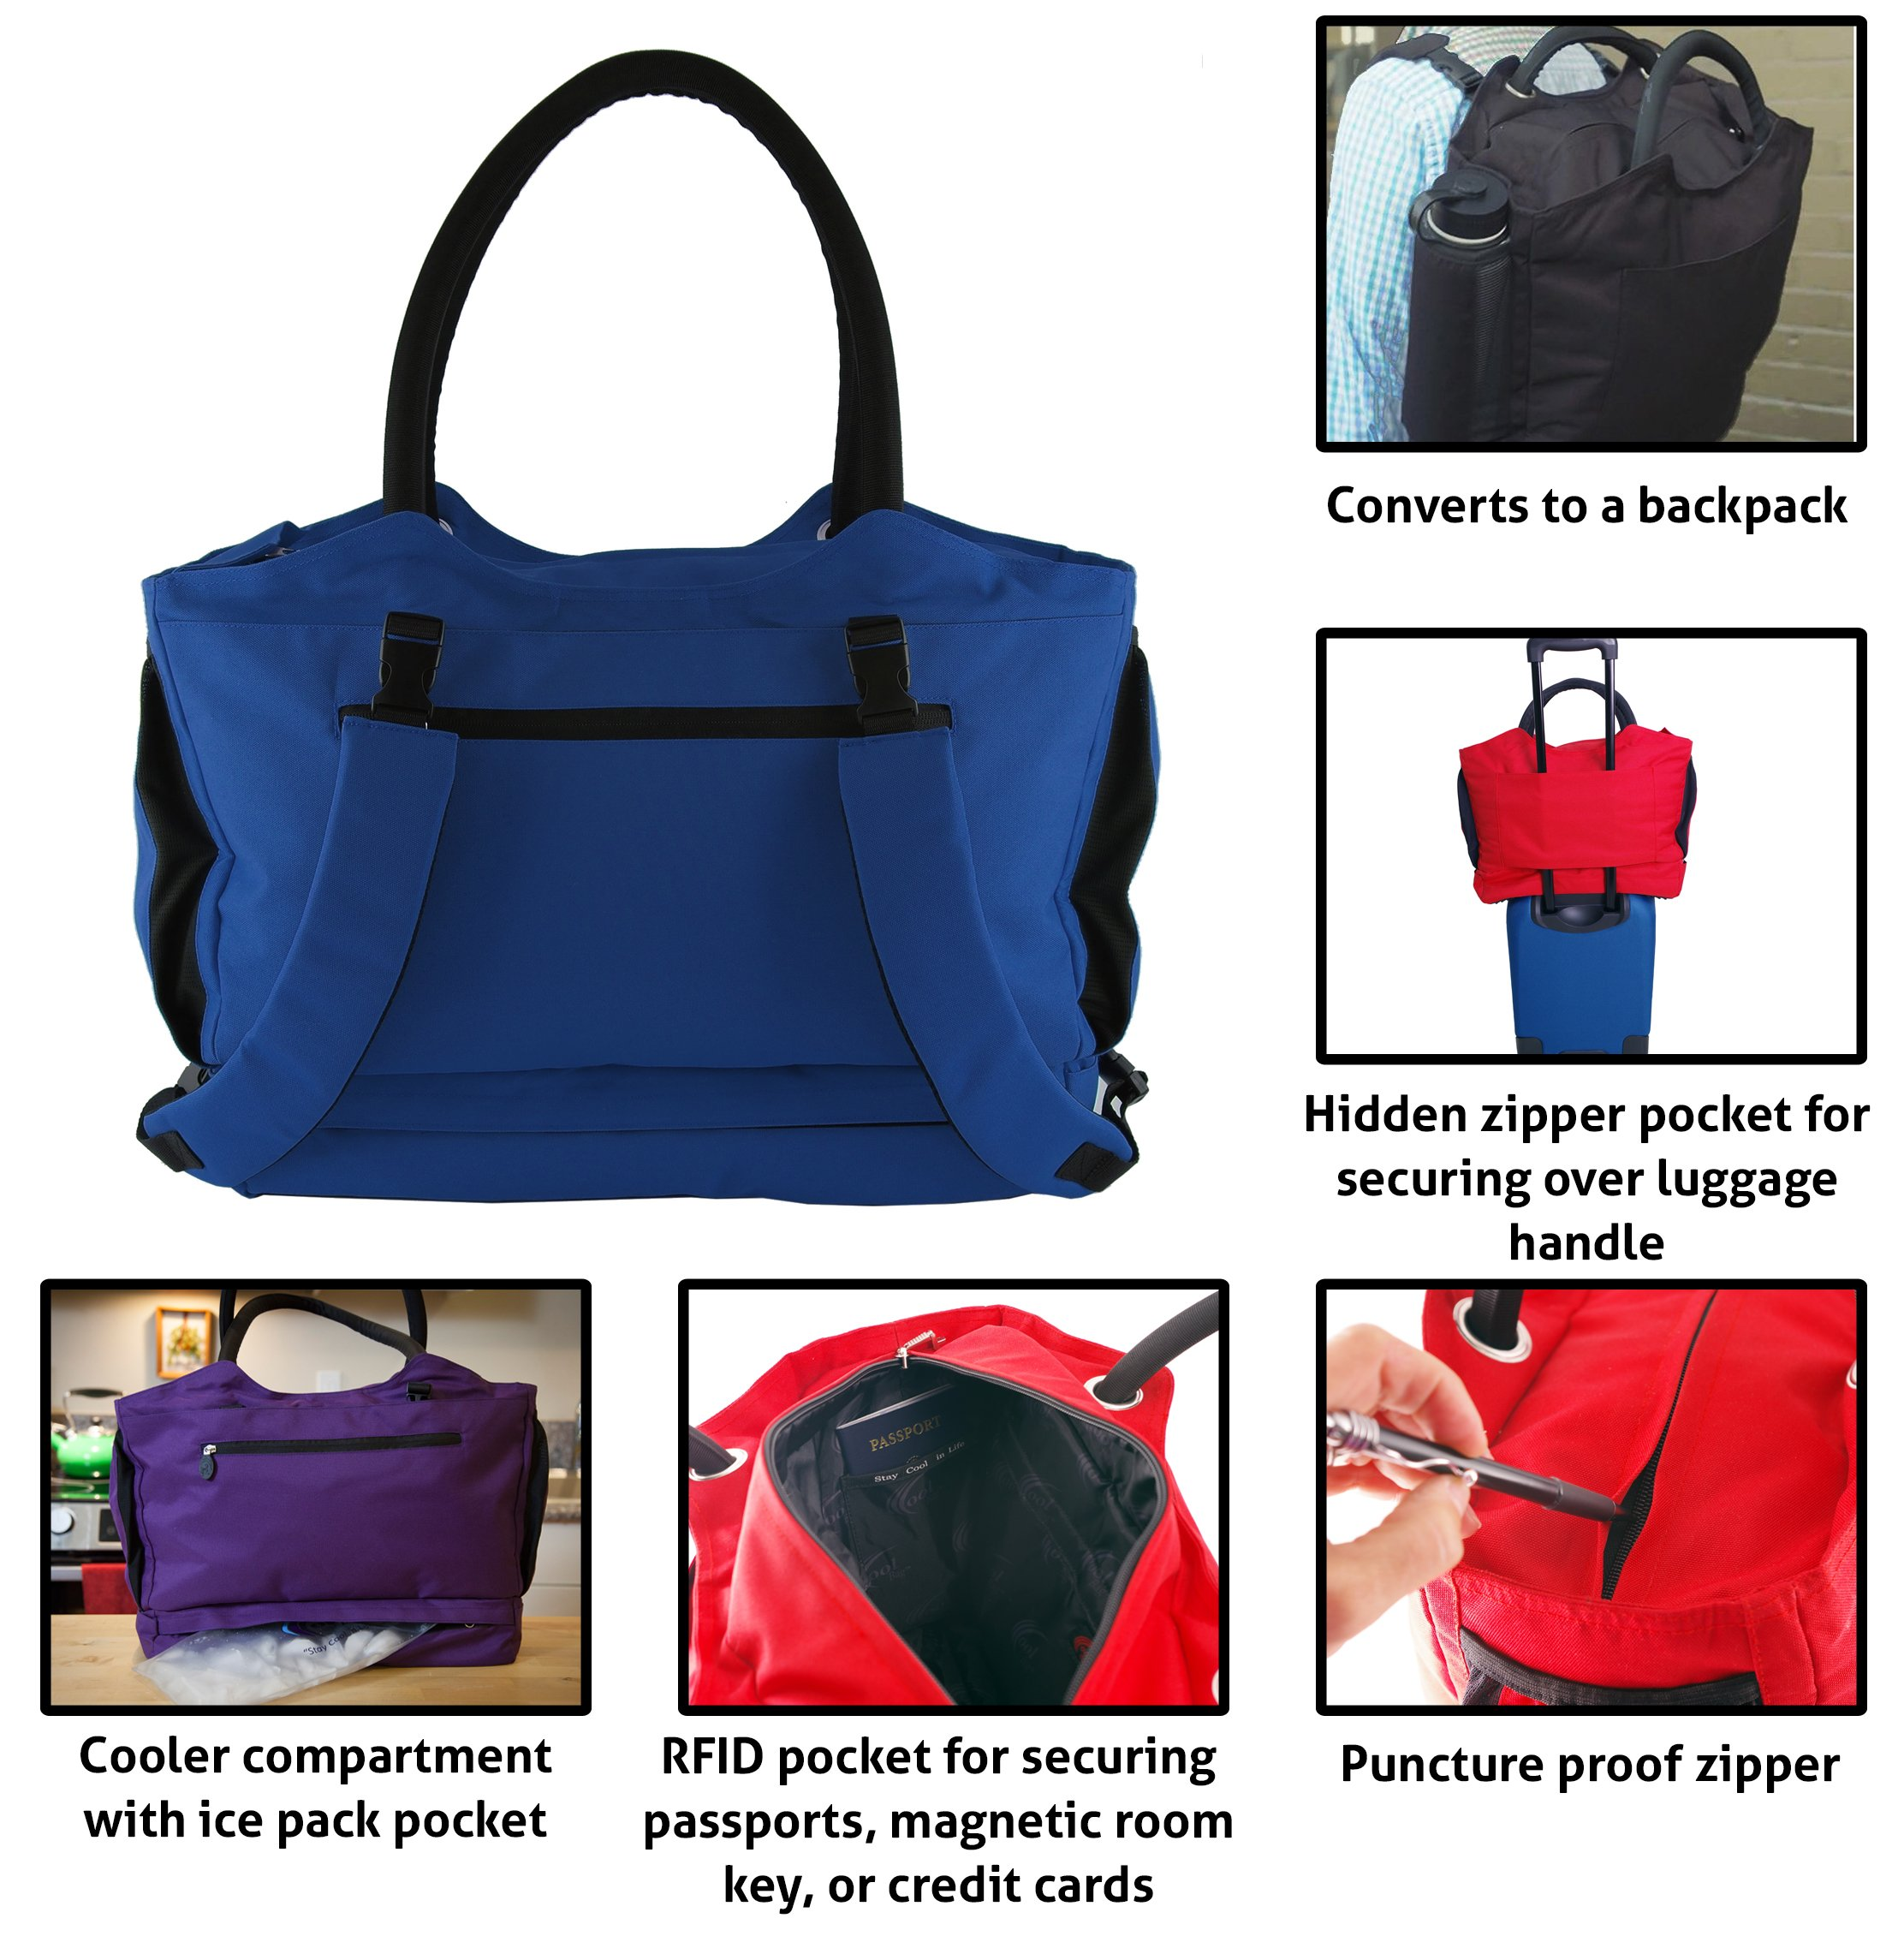 CoolBag Gen 2 Locking Anti-Theft Travel Tote With Insulated Cooler Compartment (Barbados Blue) by CoolBag (Image #3)